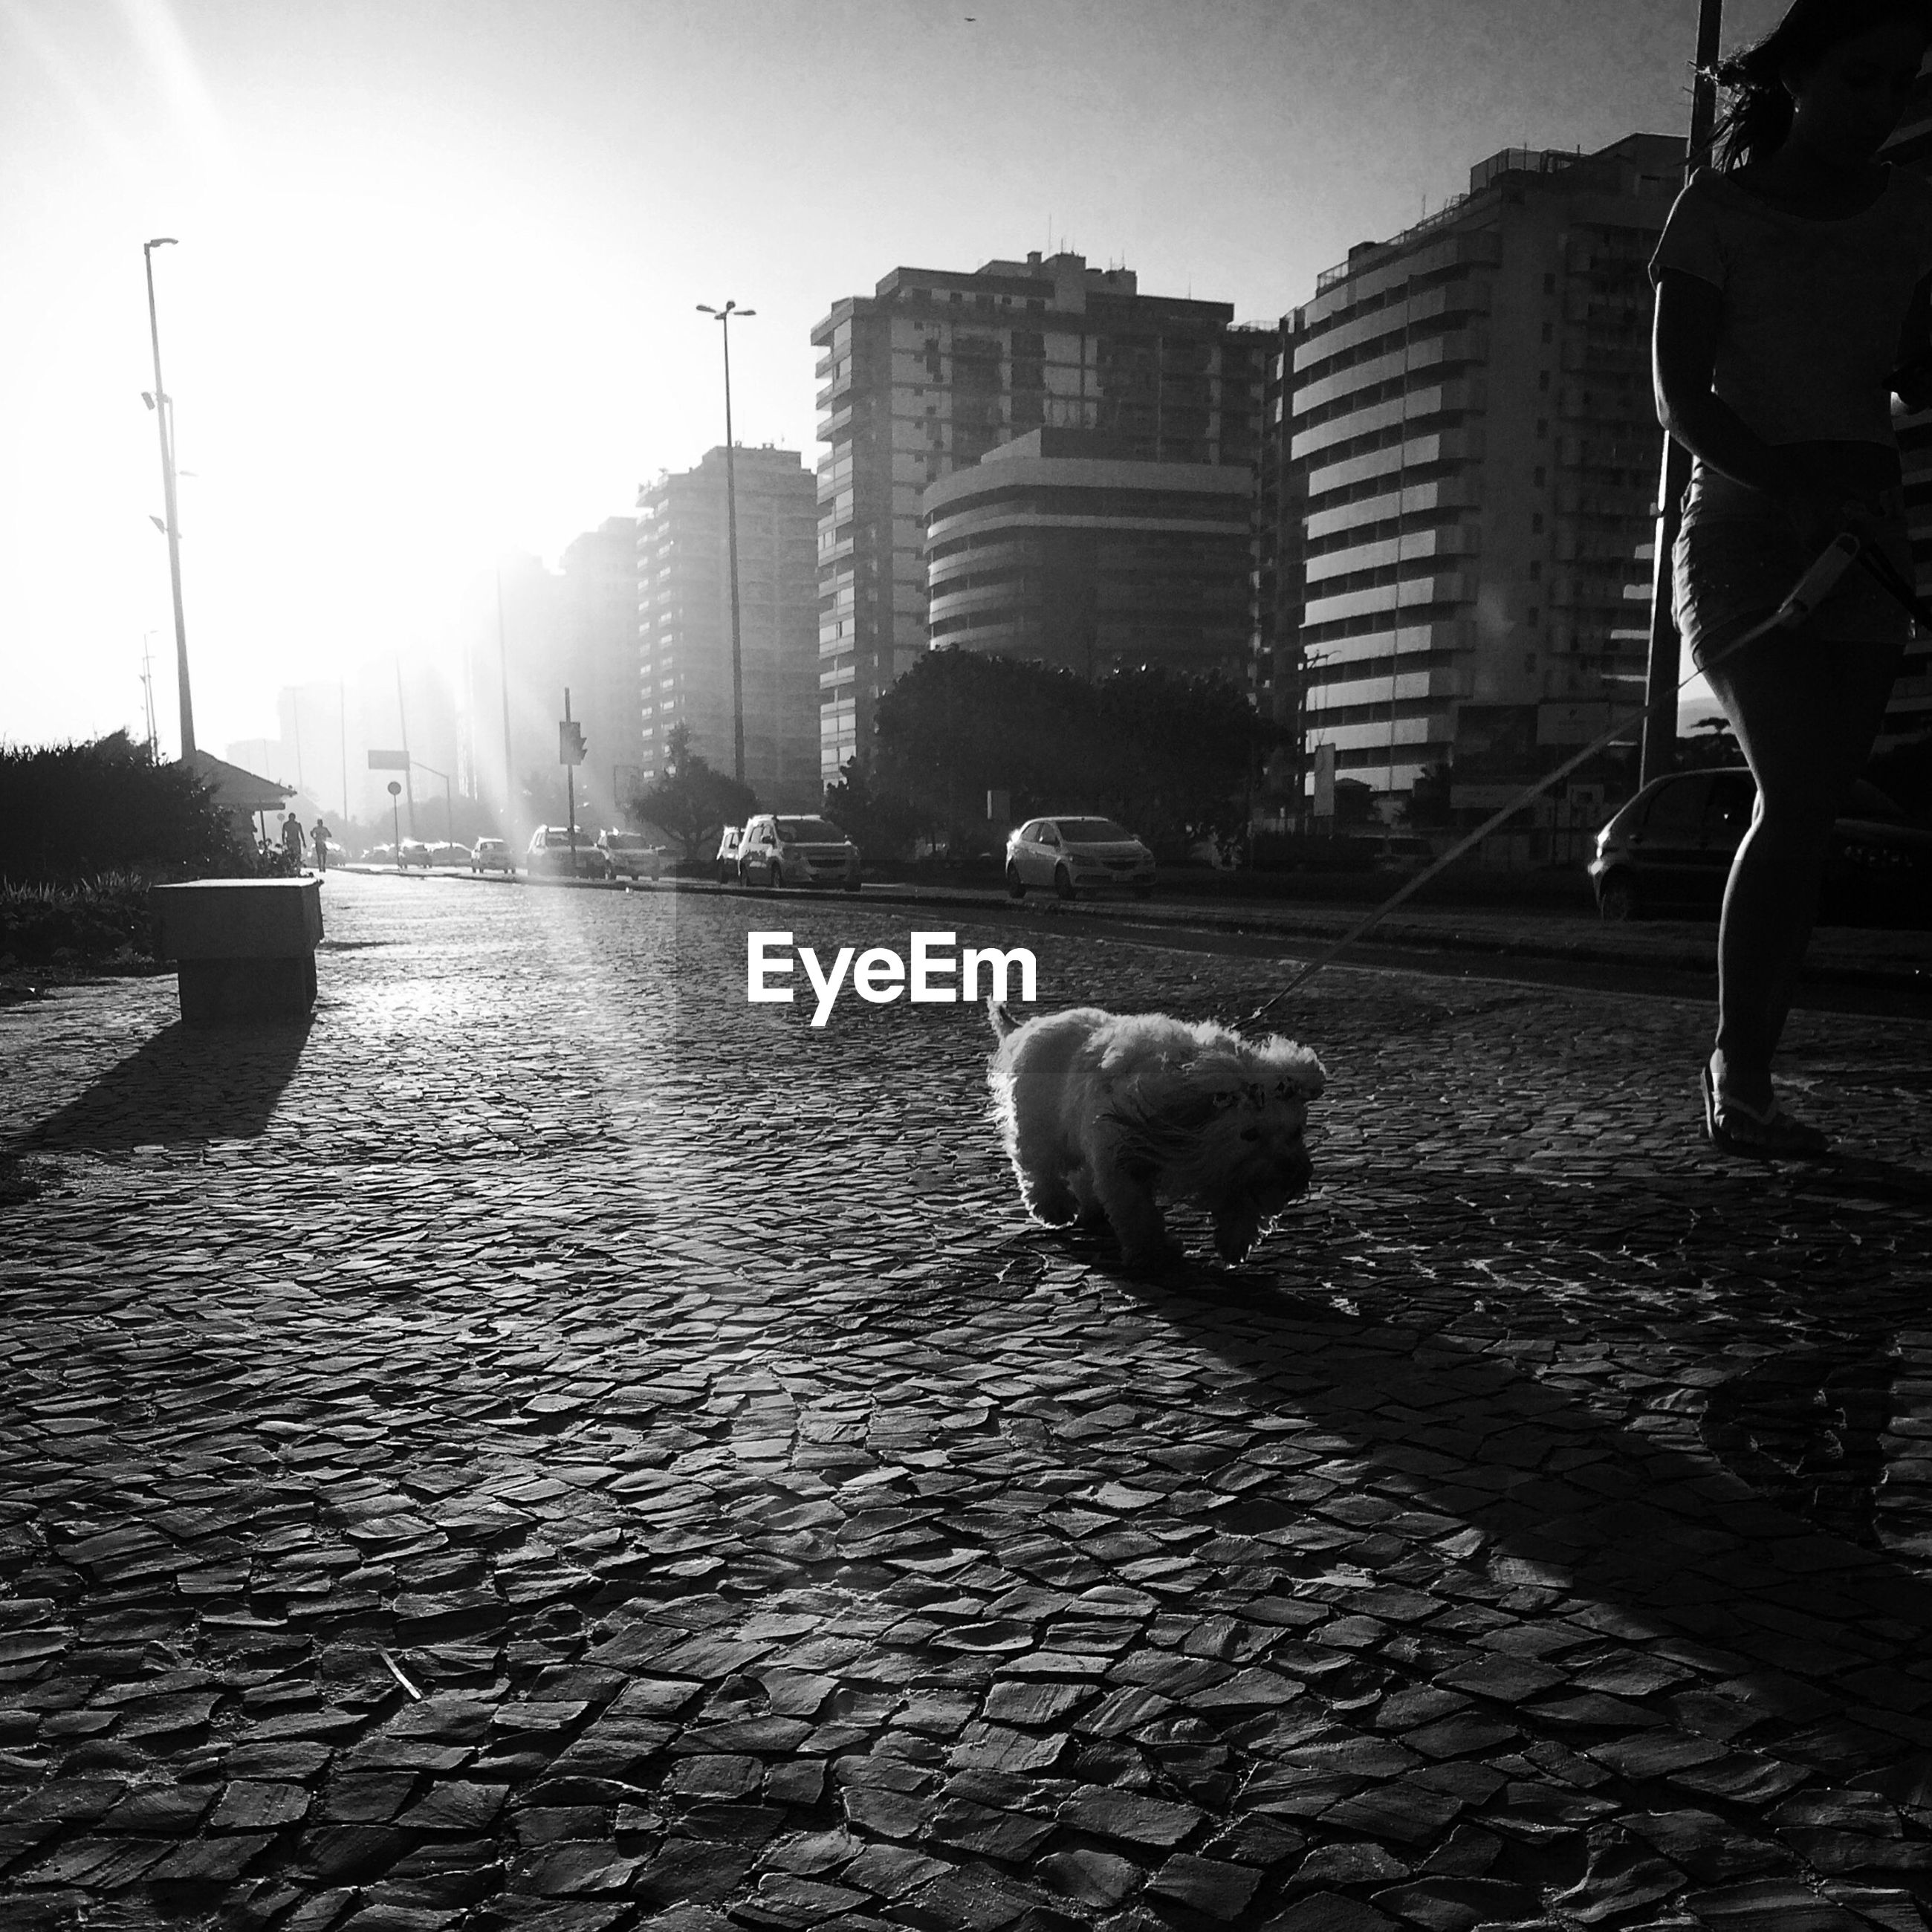 VIEW OF A DOG IN CITY